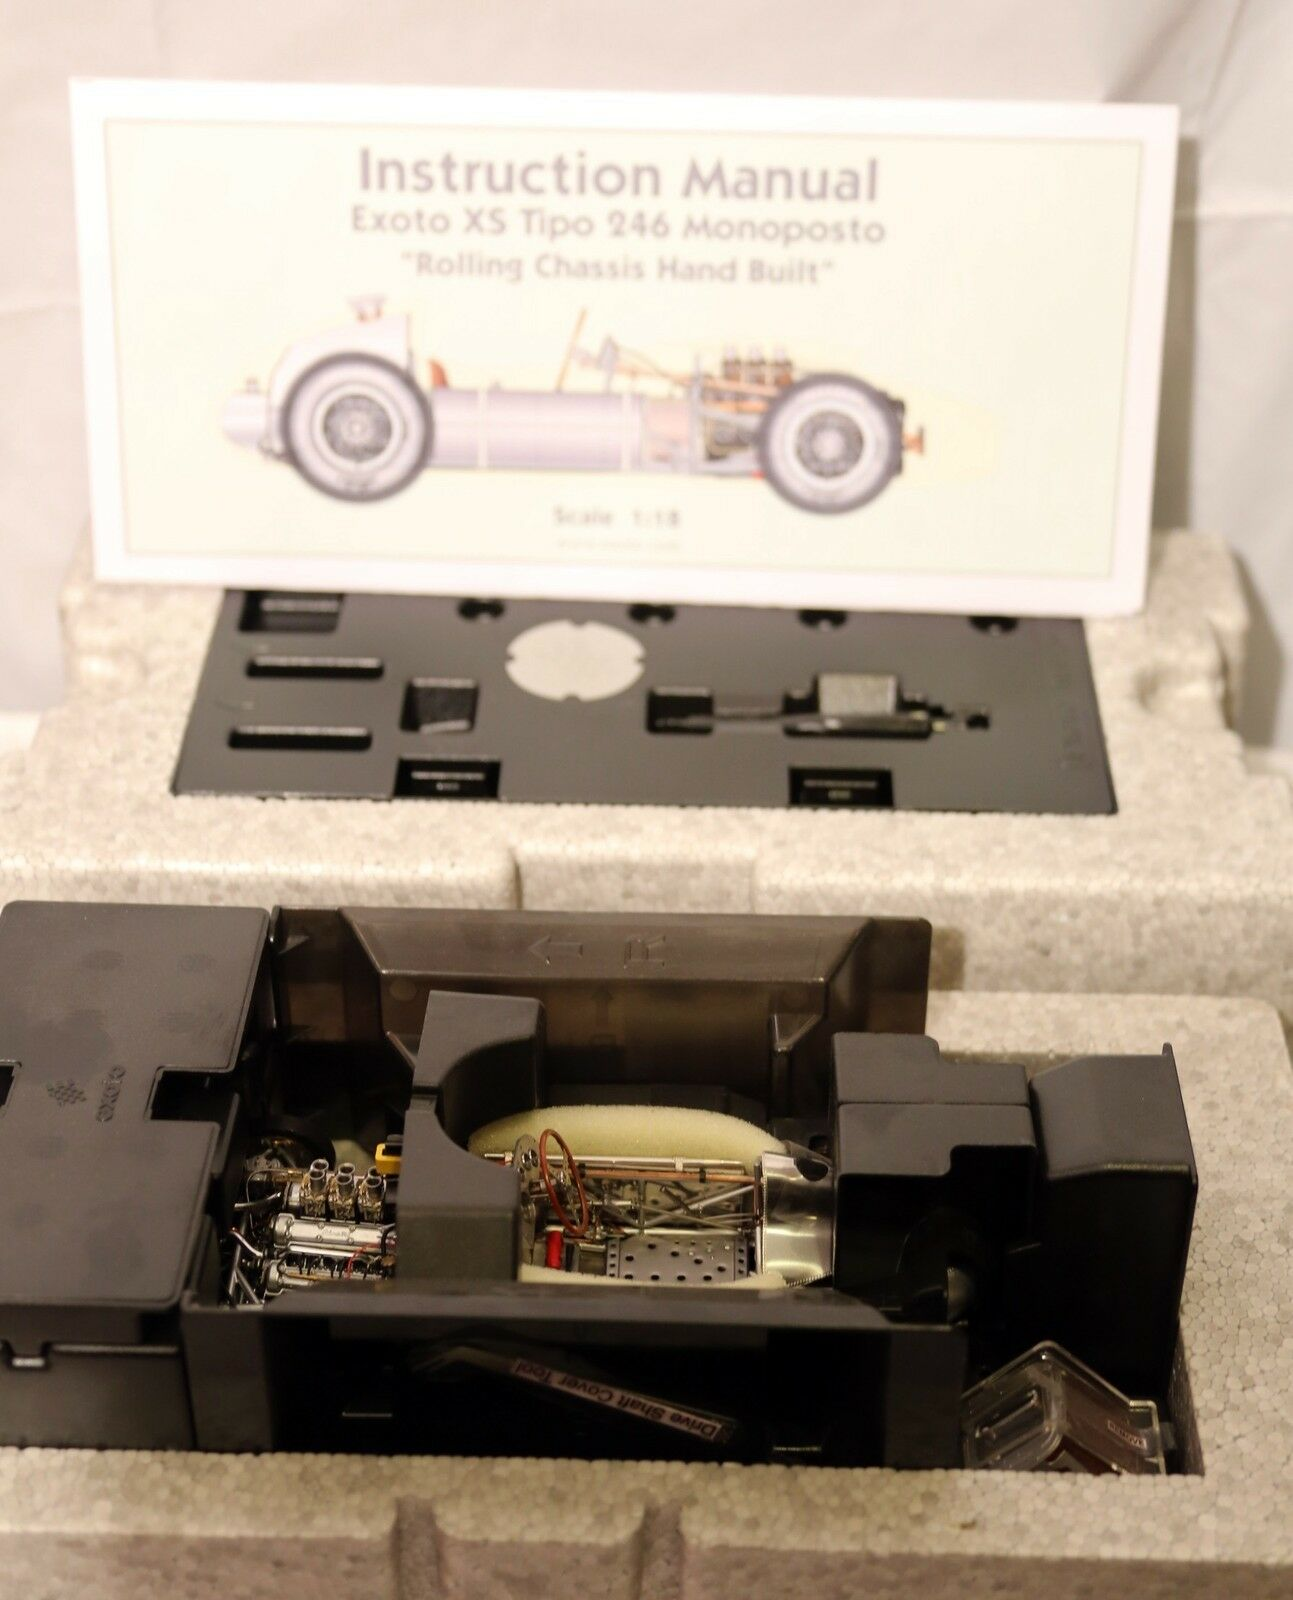 Exoto 1958 Tipo 246 Monoposto Monoposto Monoposto rolling chassis, new in box dfbc8b